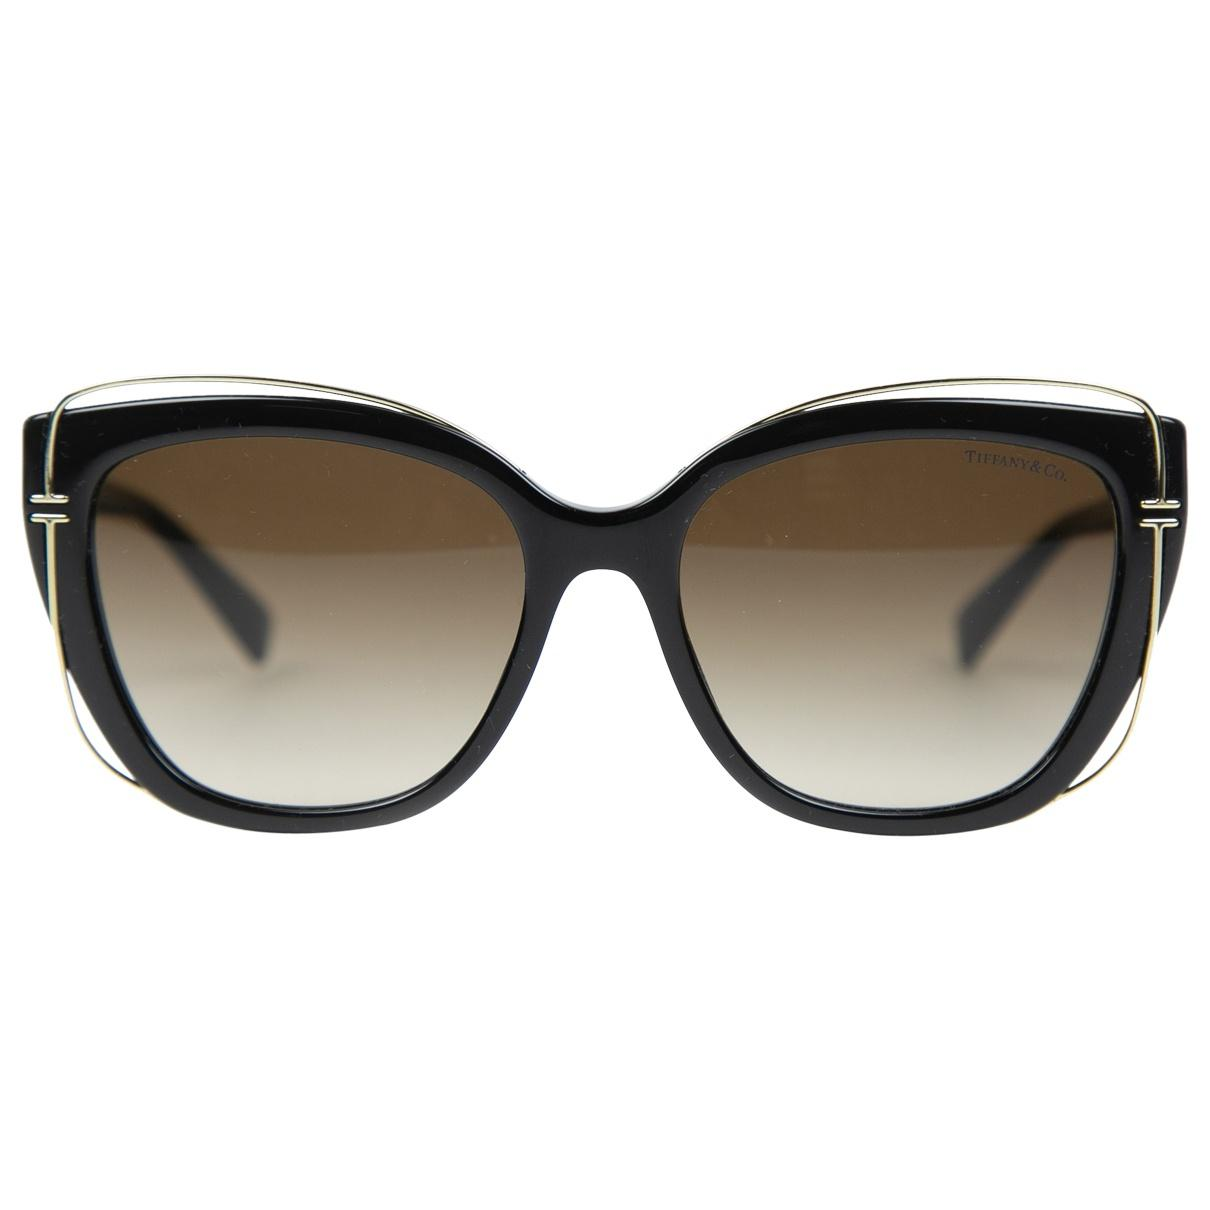 b6978b60862 Lyst - Tiffany   Co. Oversized Sunglasses in Black